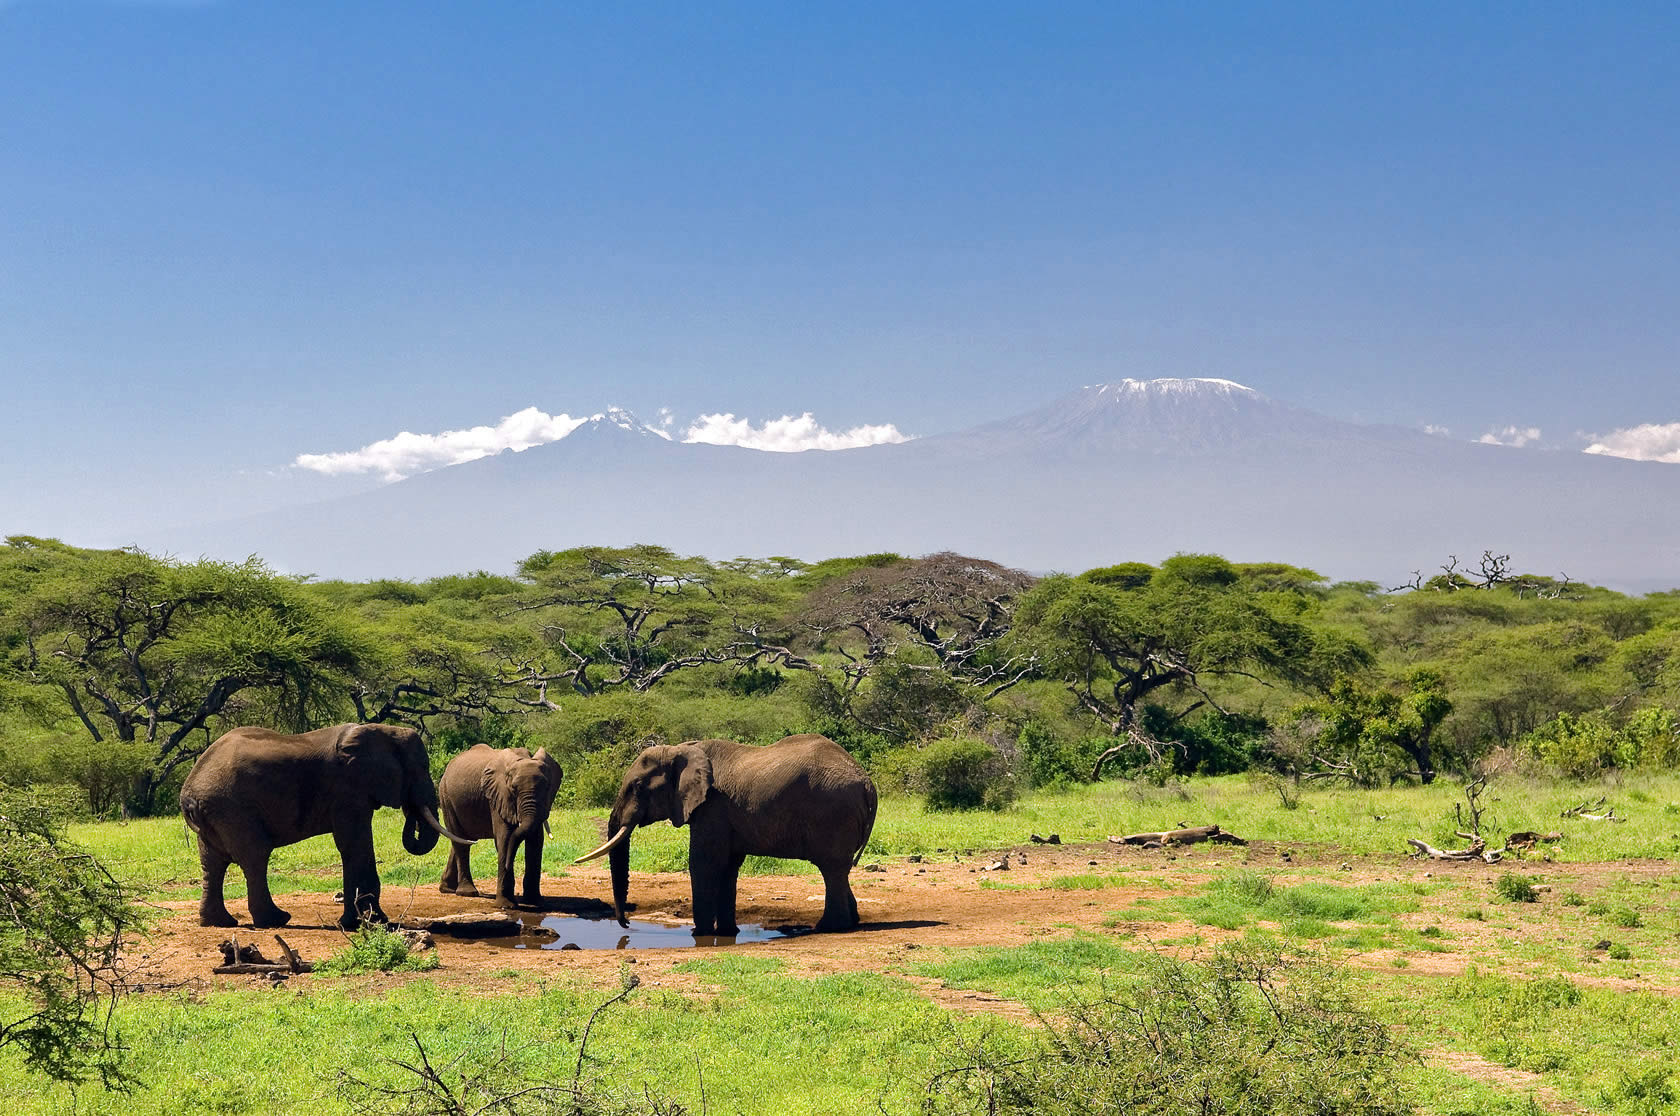 OlDonyoWuas_ElephantDrinkingWithMountKilimanjaro_May2009_reduced.jpg